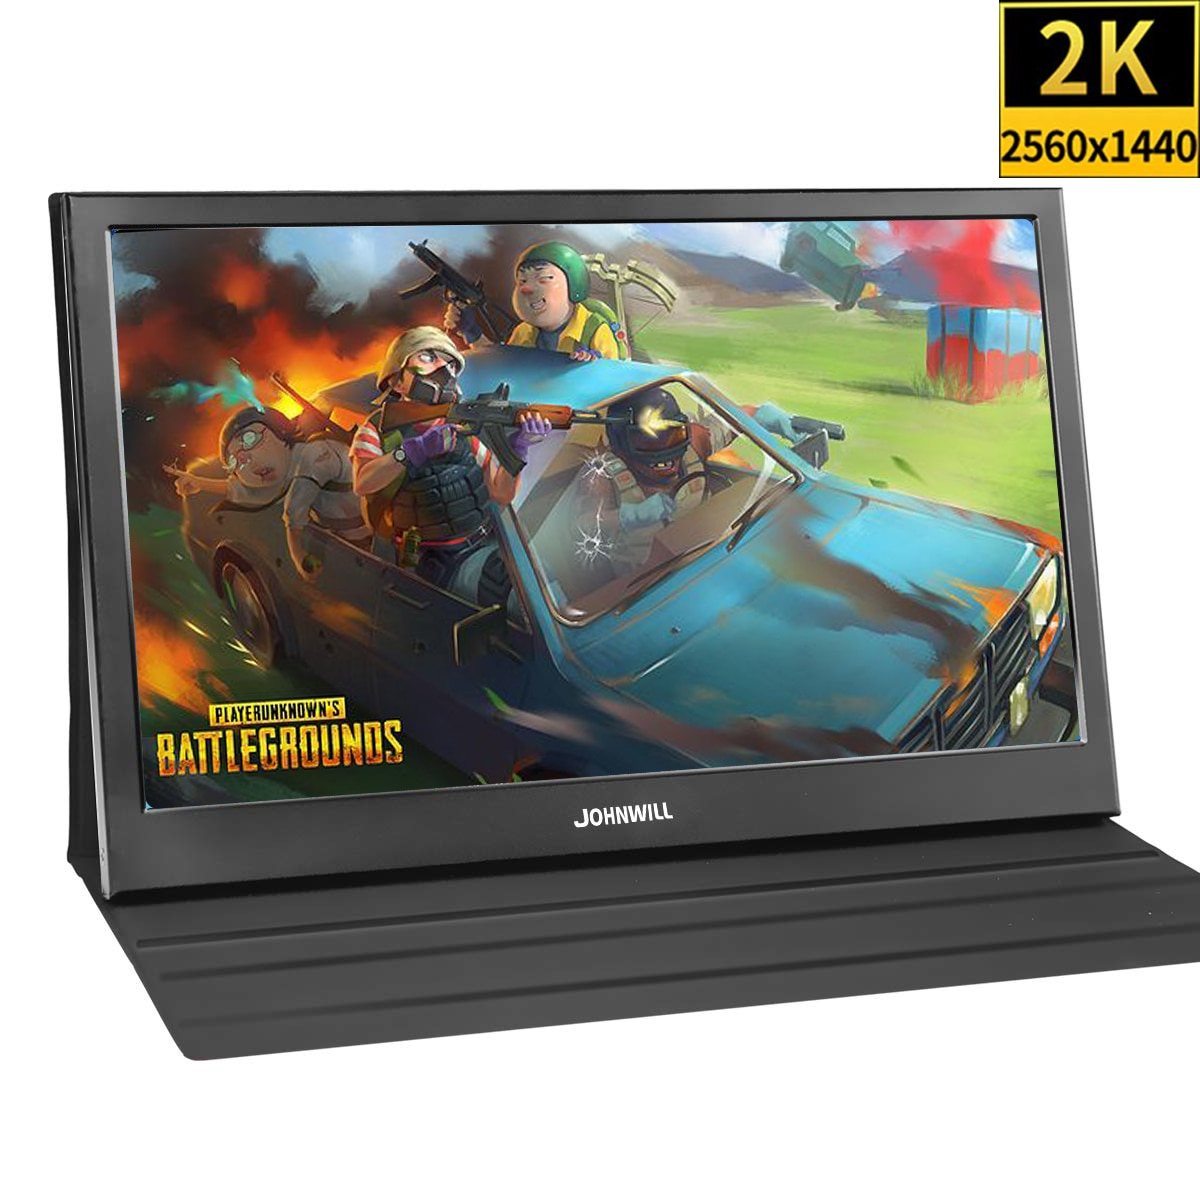 13.3 Inch 2K Portable Monitor for PS4 Wins 7 8 10 Full HD 2560 X 1440 IPS Screen Ultra Thin Display +2 HDMI Interface with Case 13 3 inch portable computer monitor pc 2k 2560x1440 hdmi ps3 ps4 xbo x360 ips lcd led display for raspberry pi wins 7 8 10 case